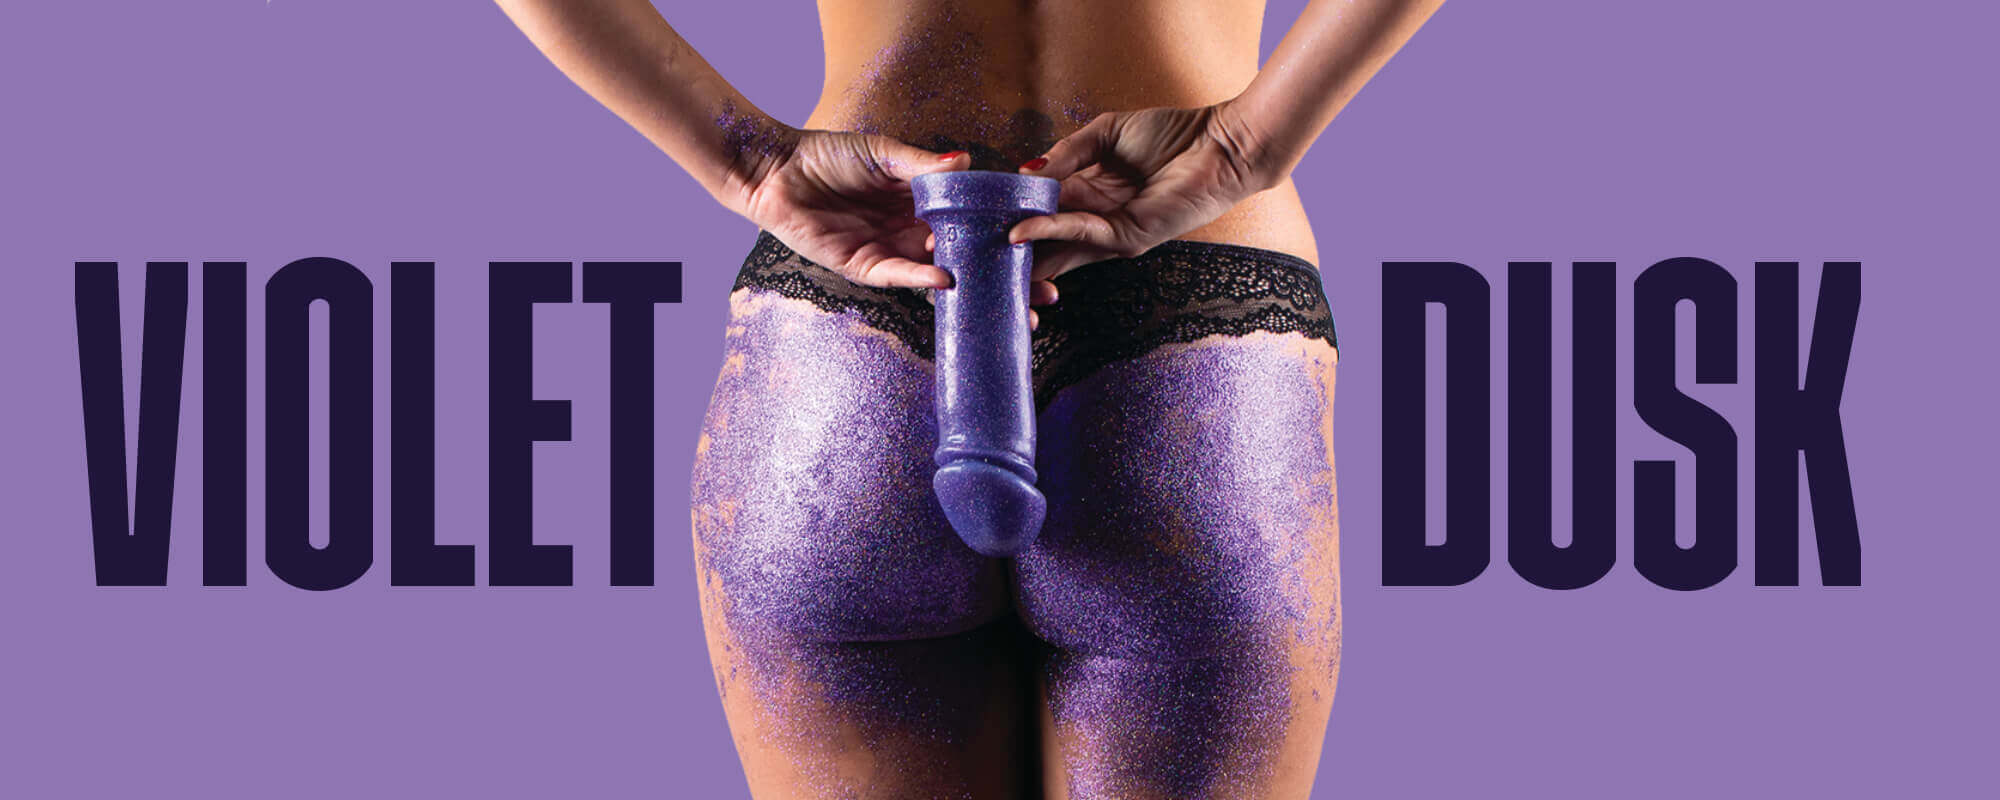 Violet Dust glitter Adam 6 inch silicone dildo with purple background